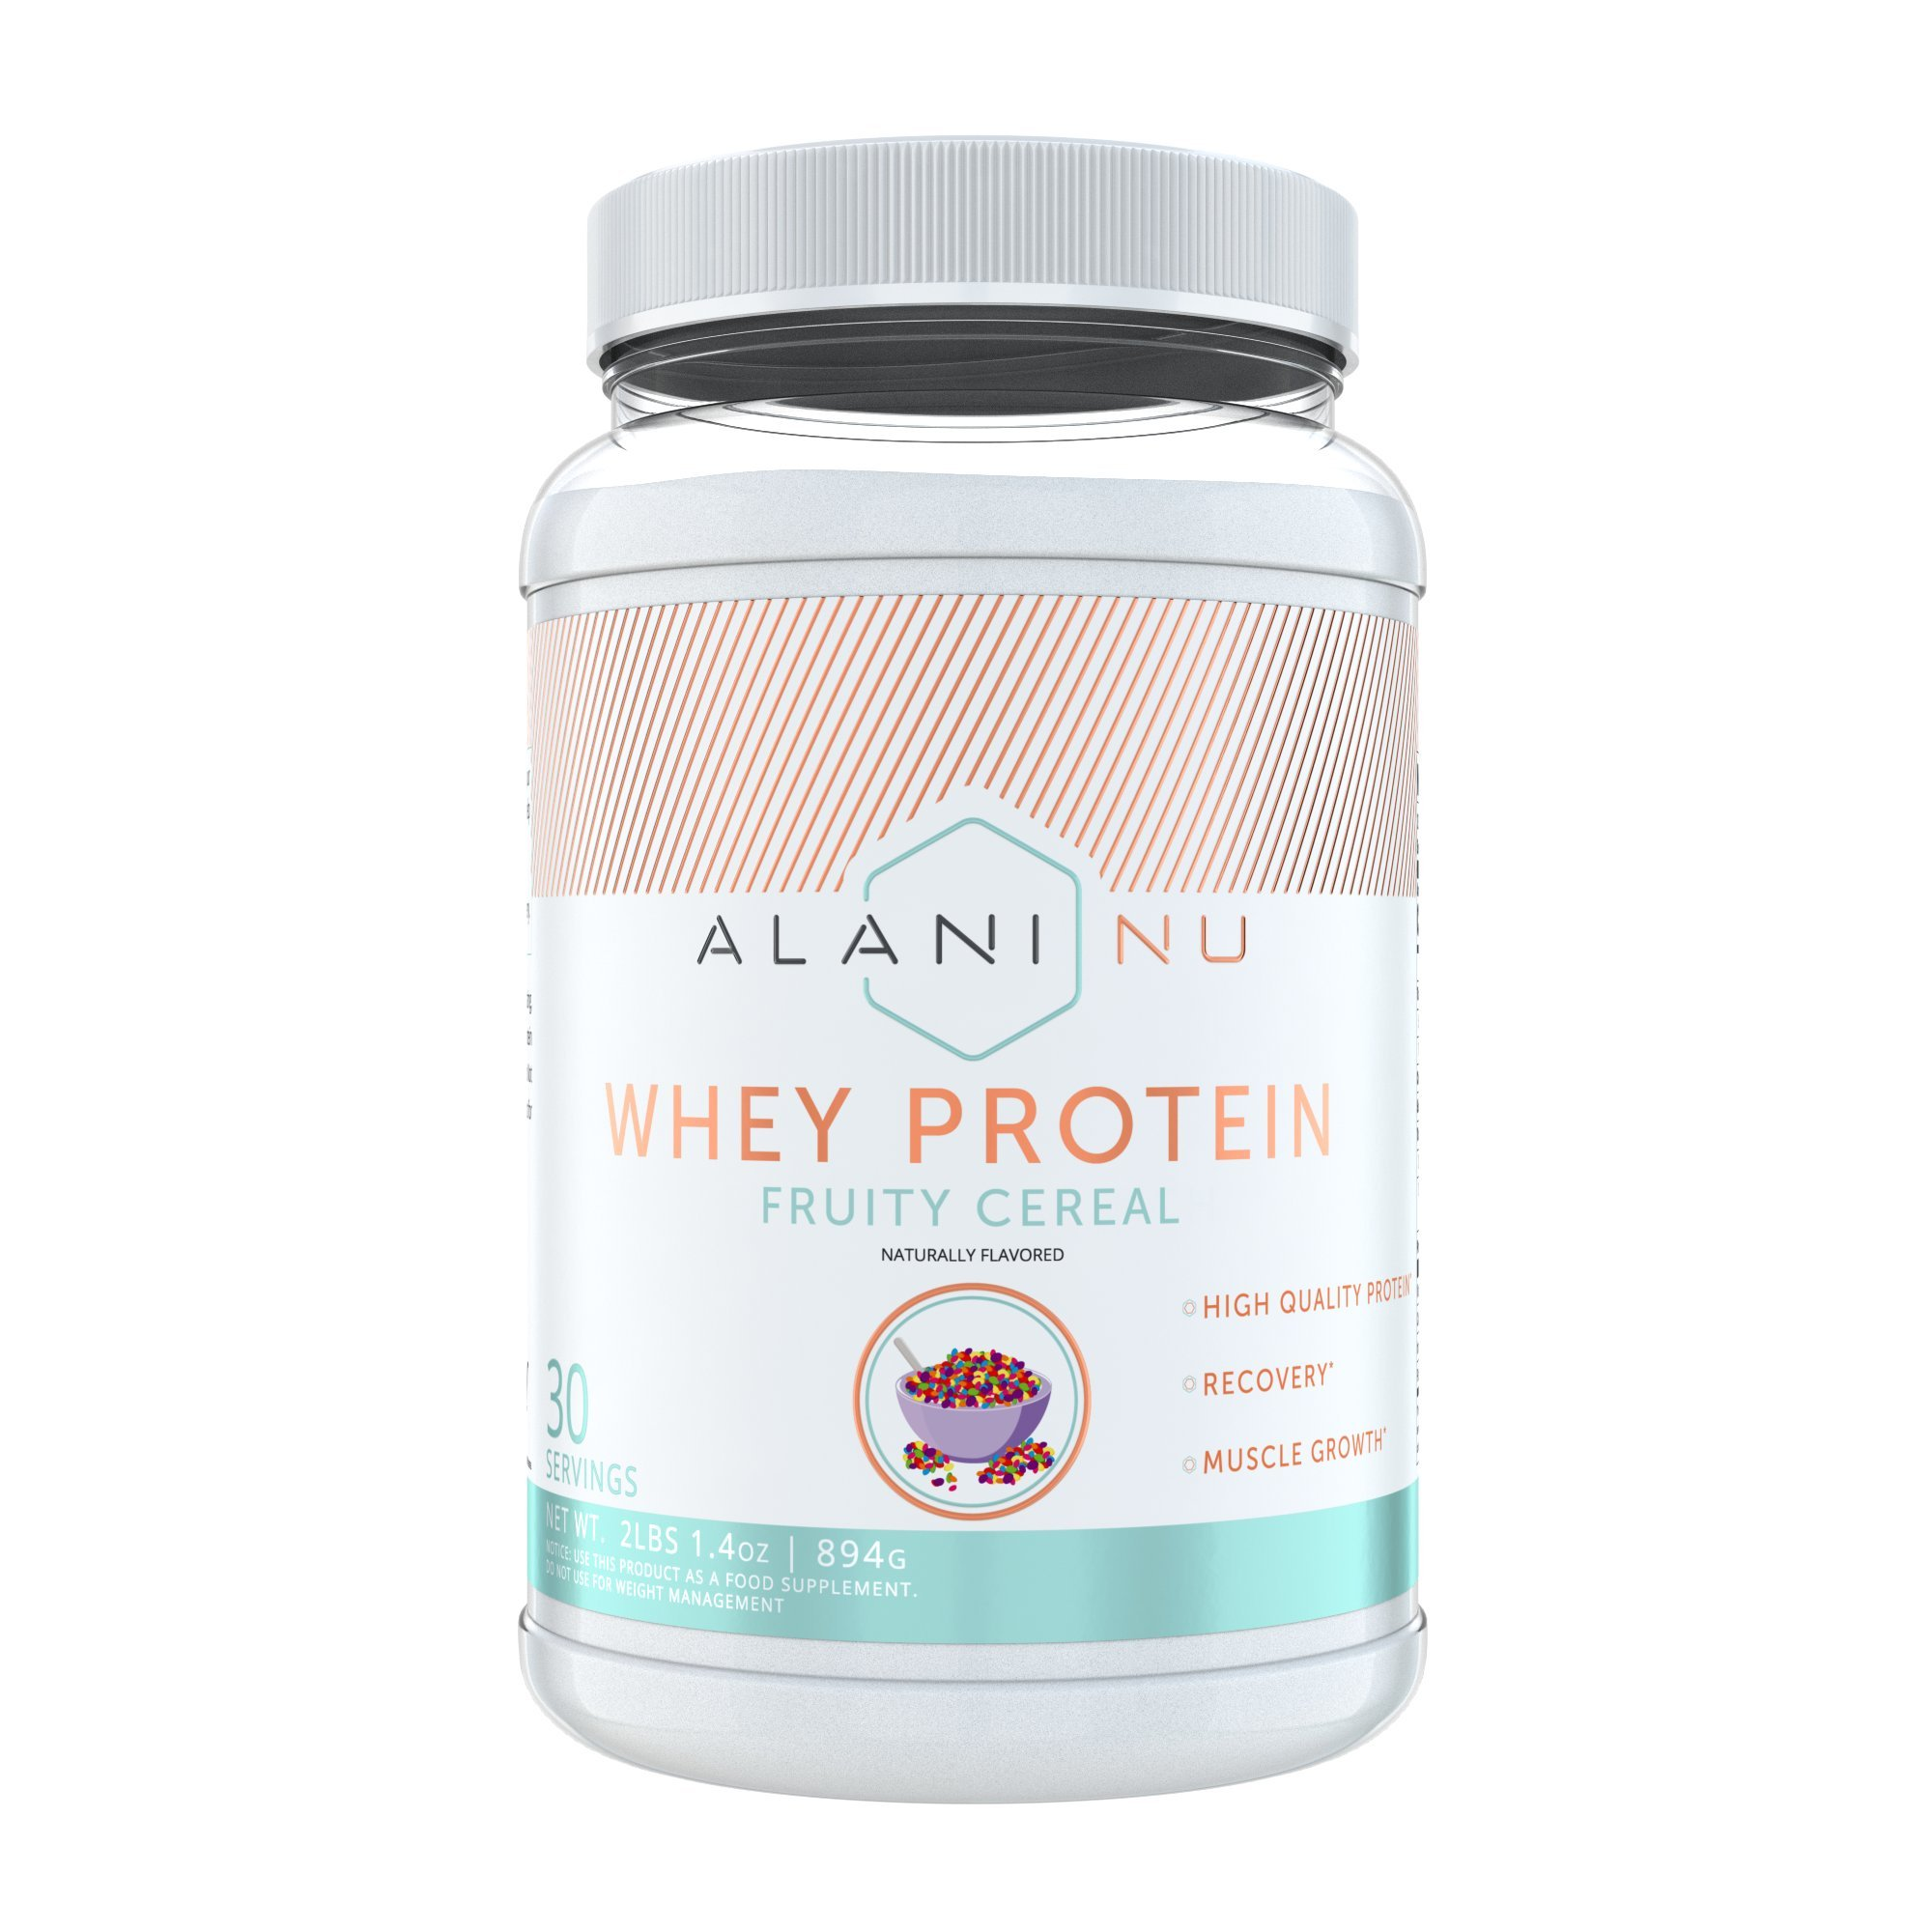 Alani Nu Whey Protein Powder - Fruity Cereal